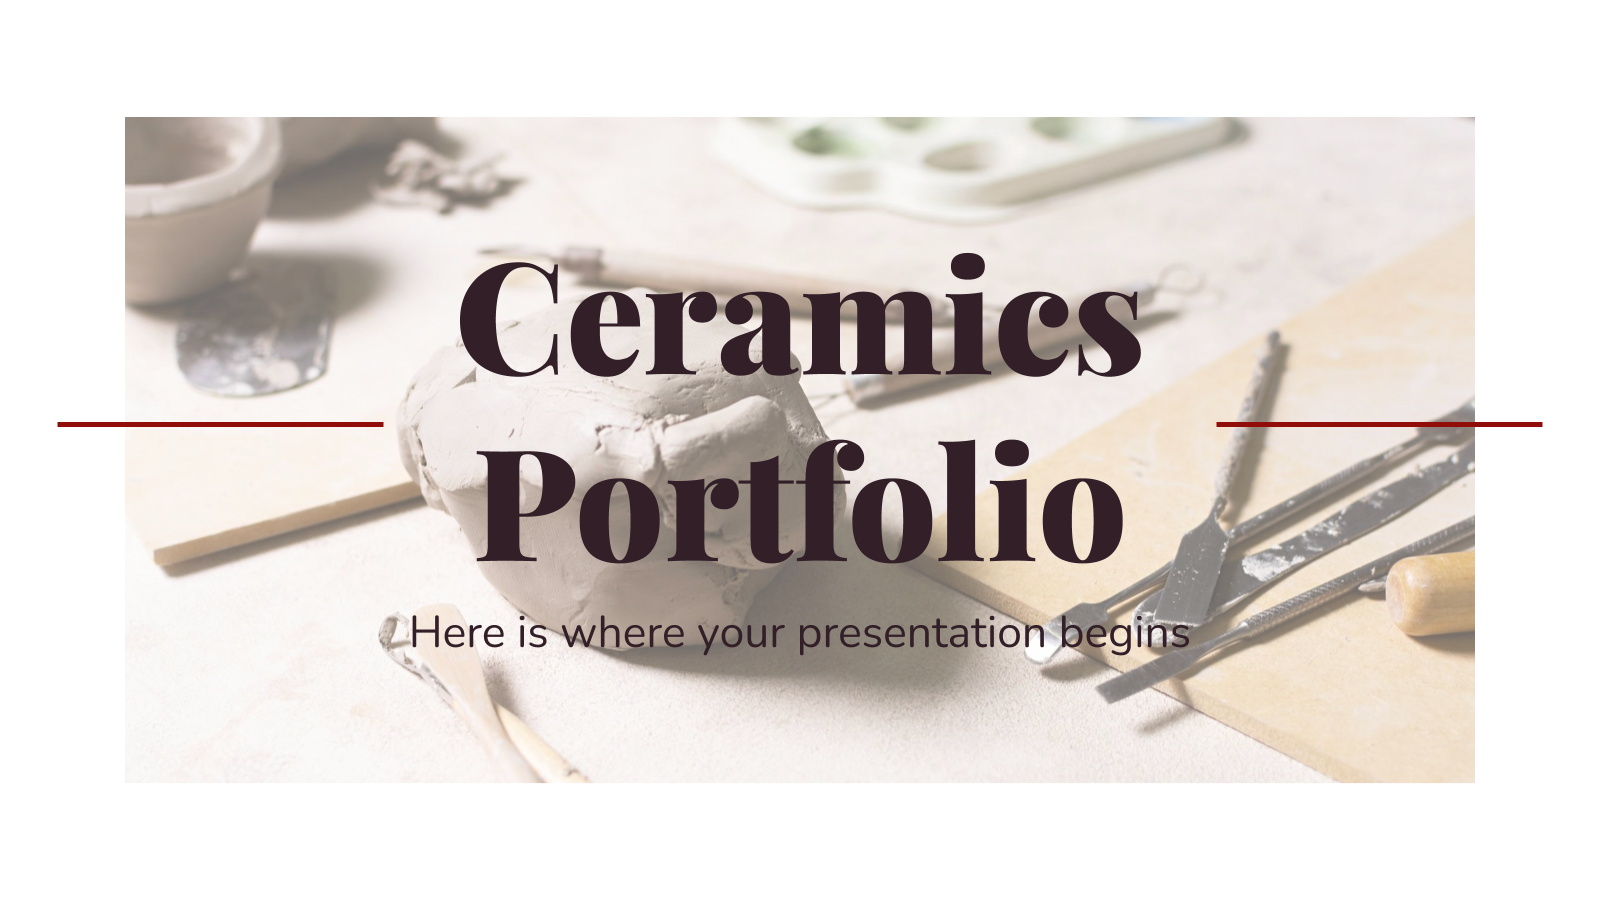 Ceramics Portfolio presentation template